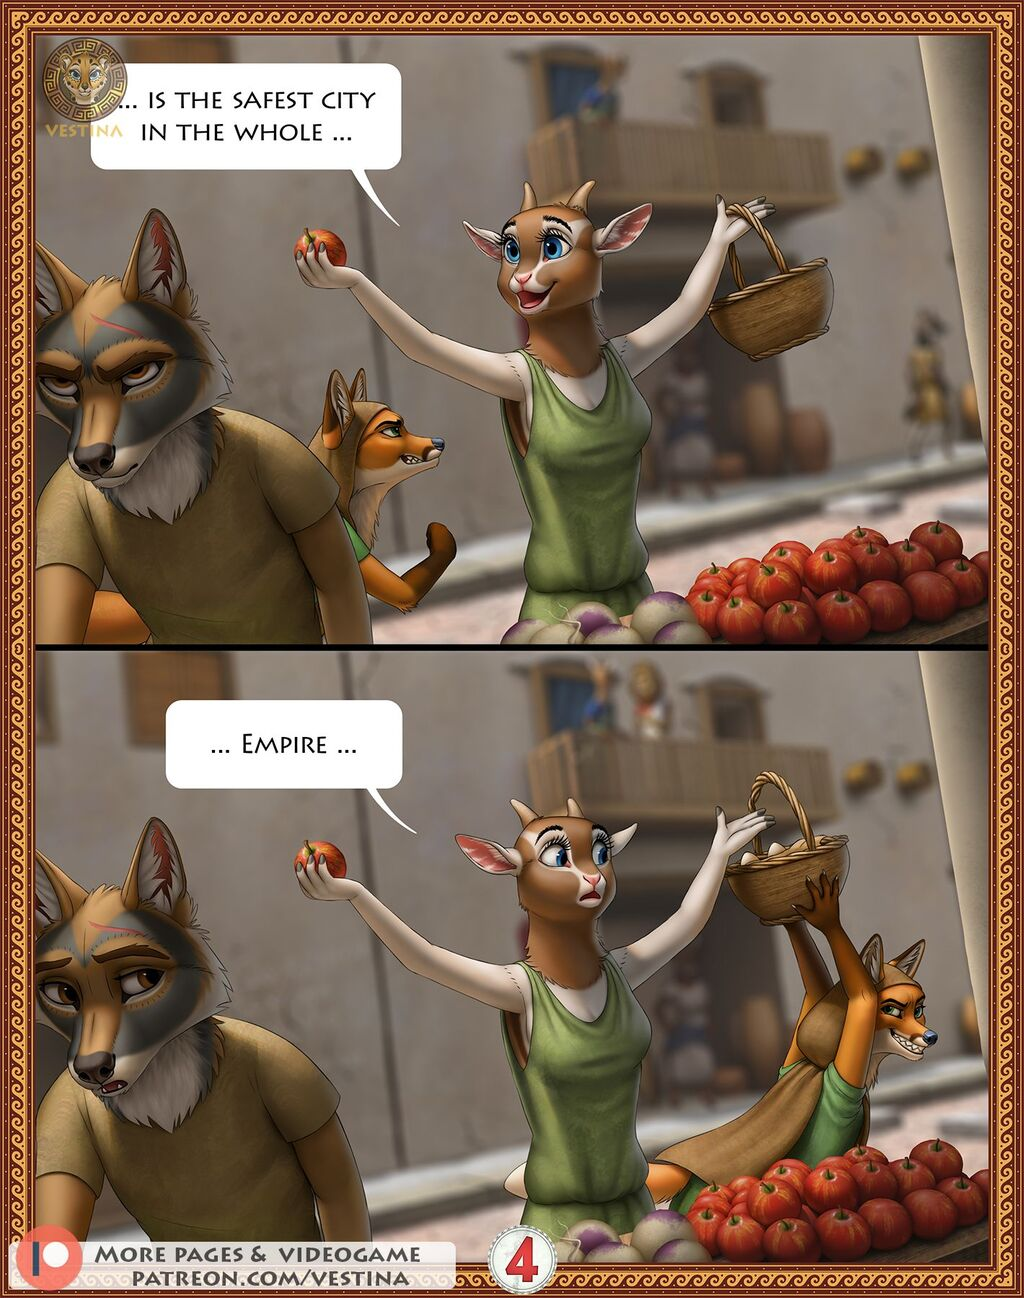 Furry Rome page 4